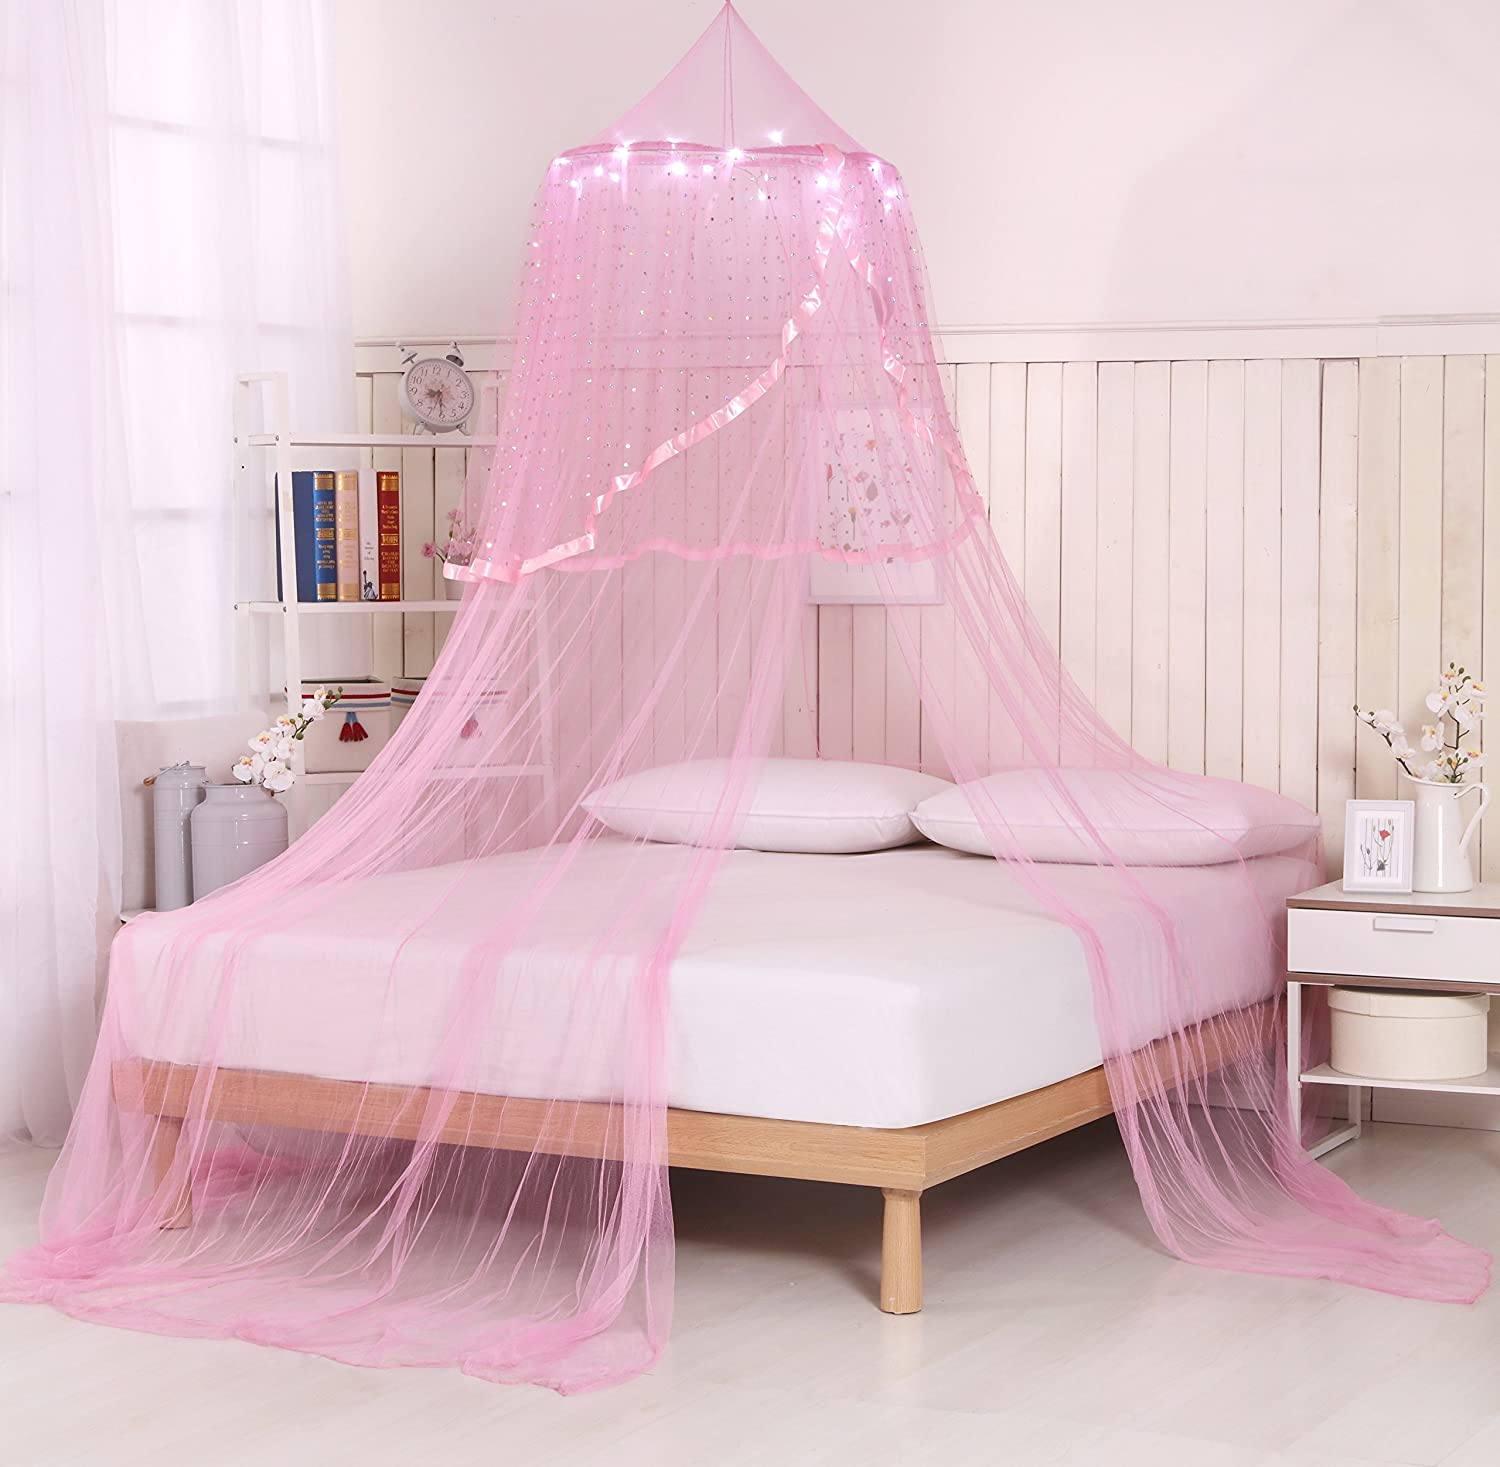 Amazoncom Princess Bed Canopy With Star Lights And Remote (Pink)